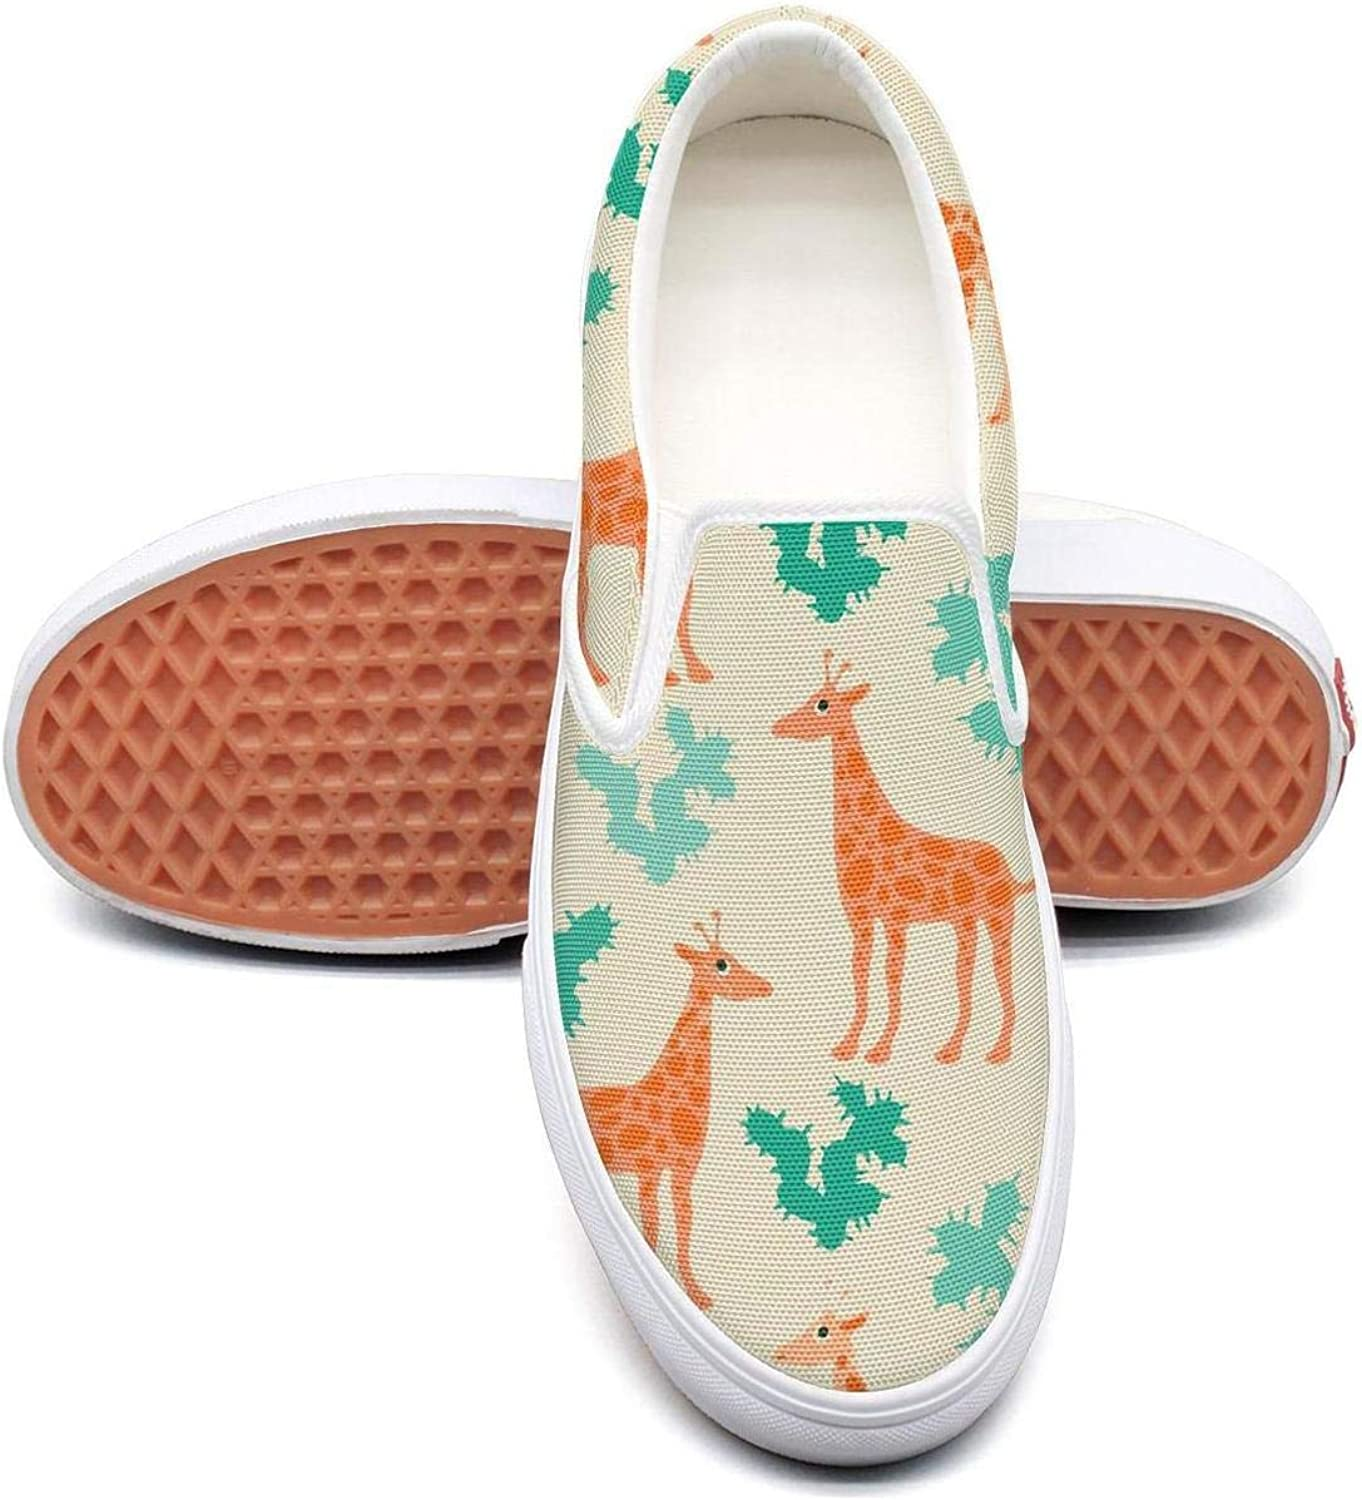 Lalige Giraffes and Cactus Cool Women Comfortable Canvas Slip-ONS Walking shoes